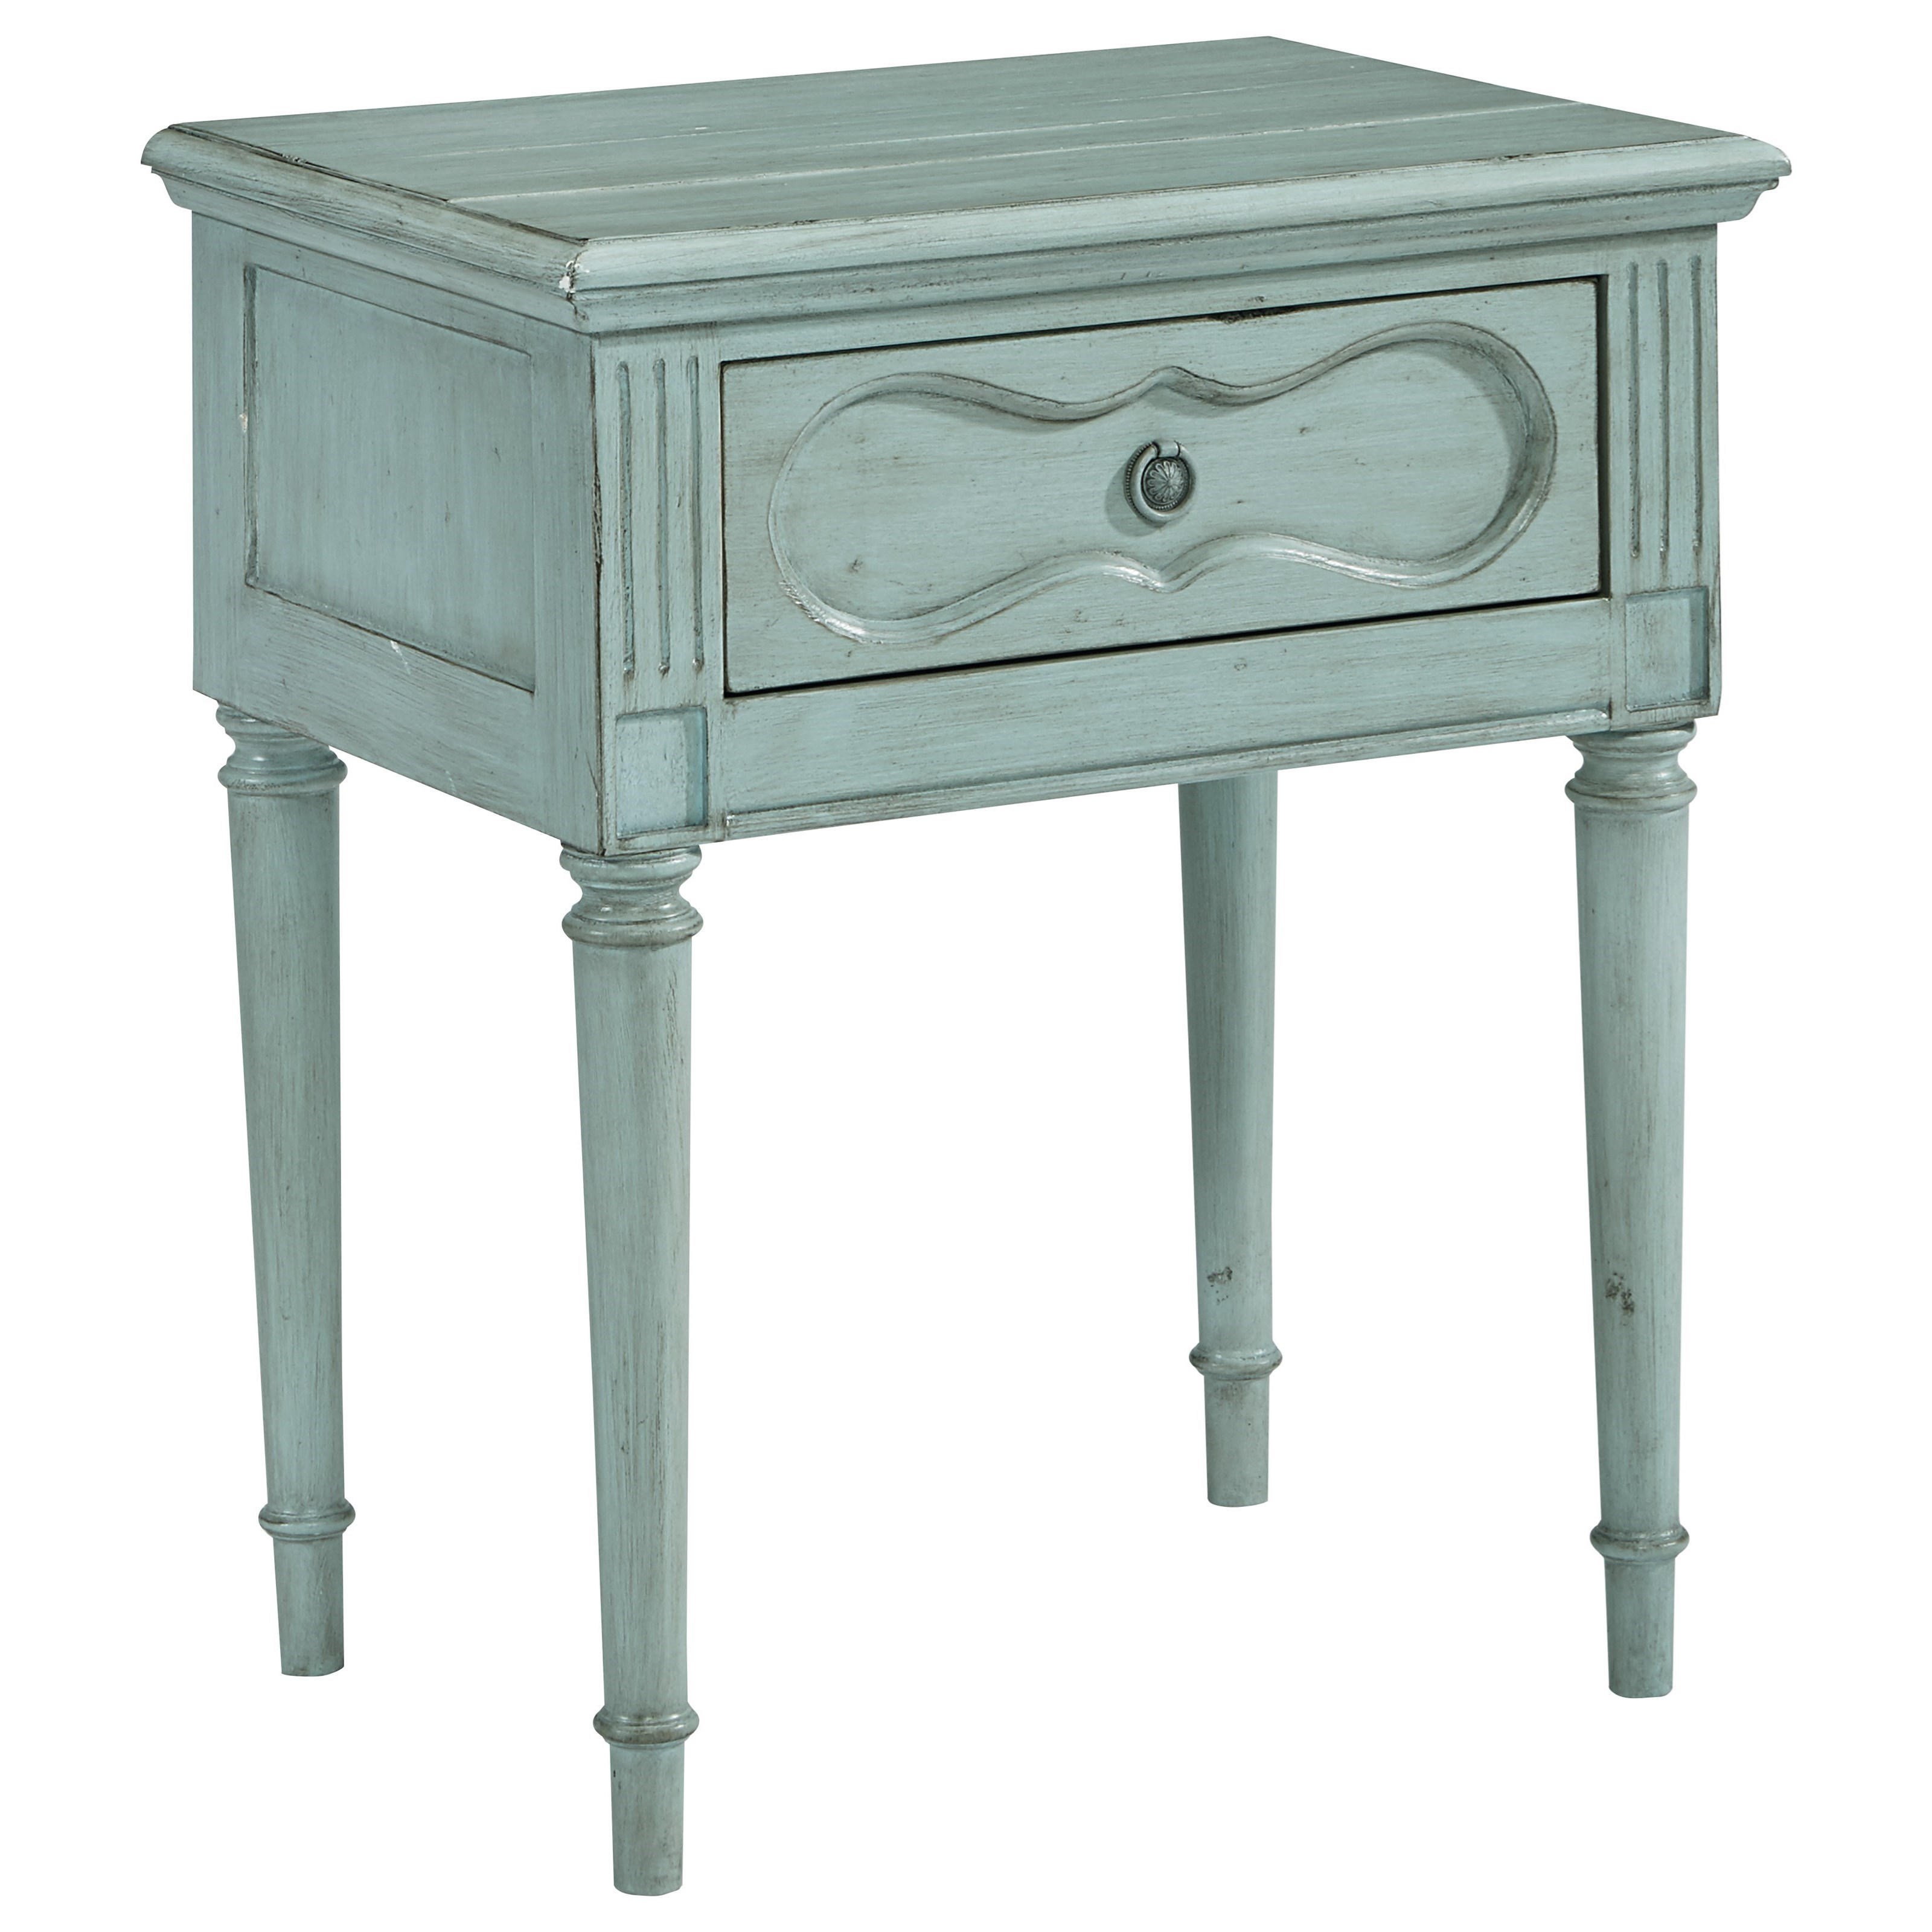 Magnolia Home by Joanna Gaines French Inspired Cameo Night Table - Item Number: 3070507D